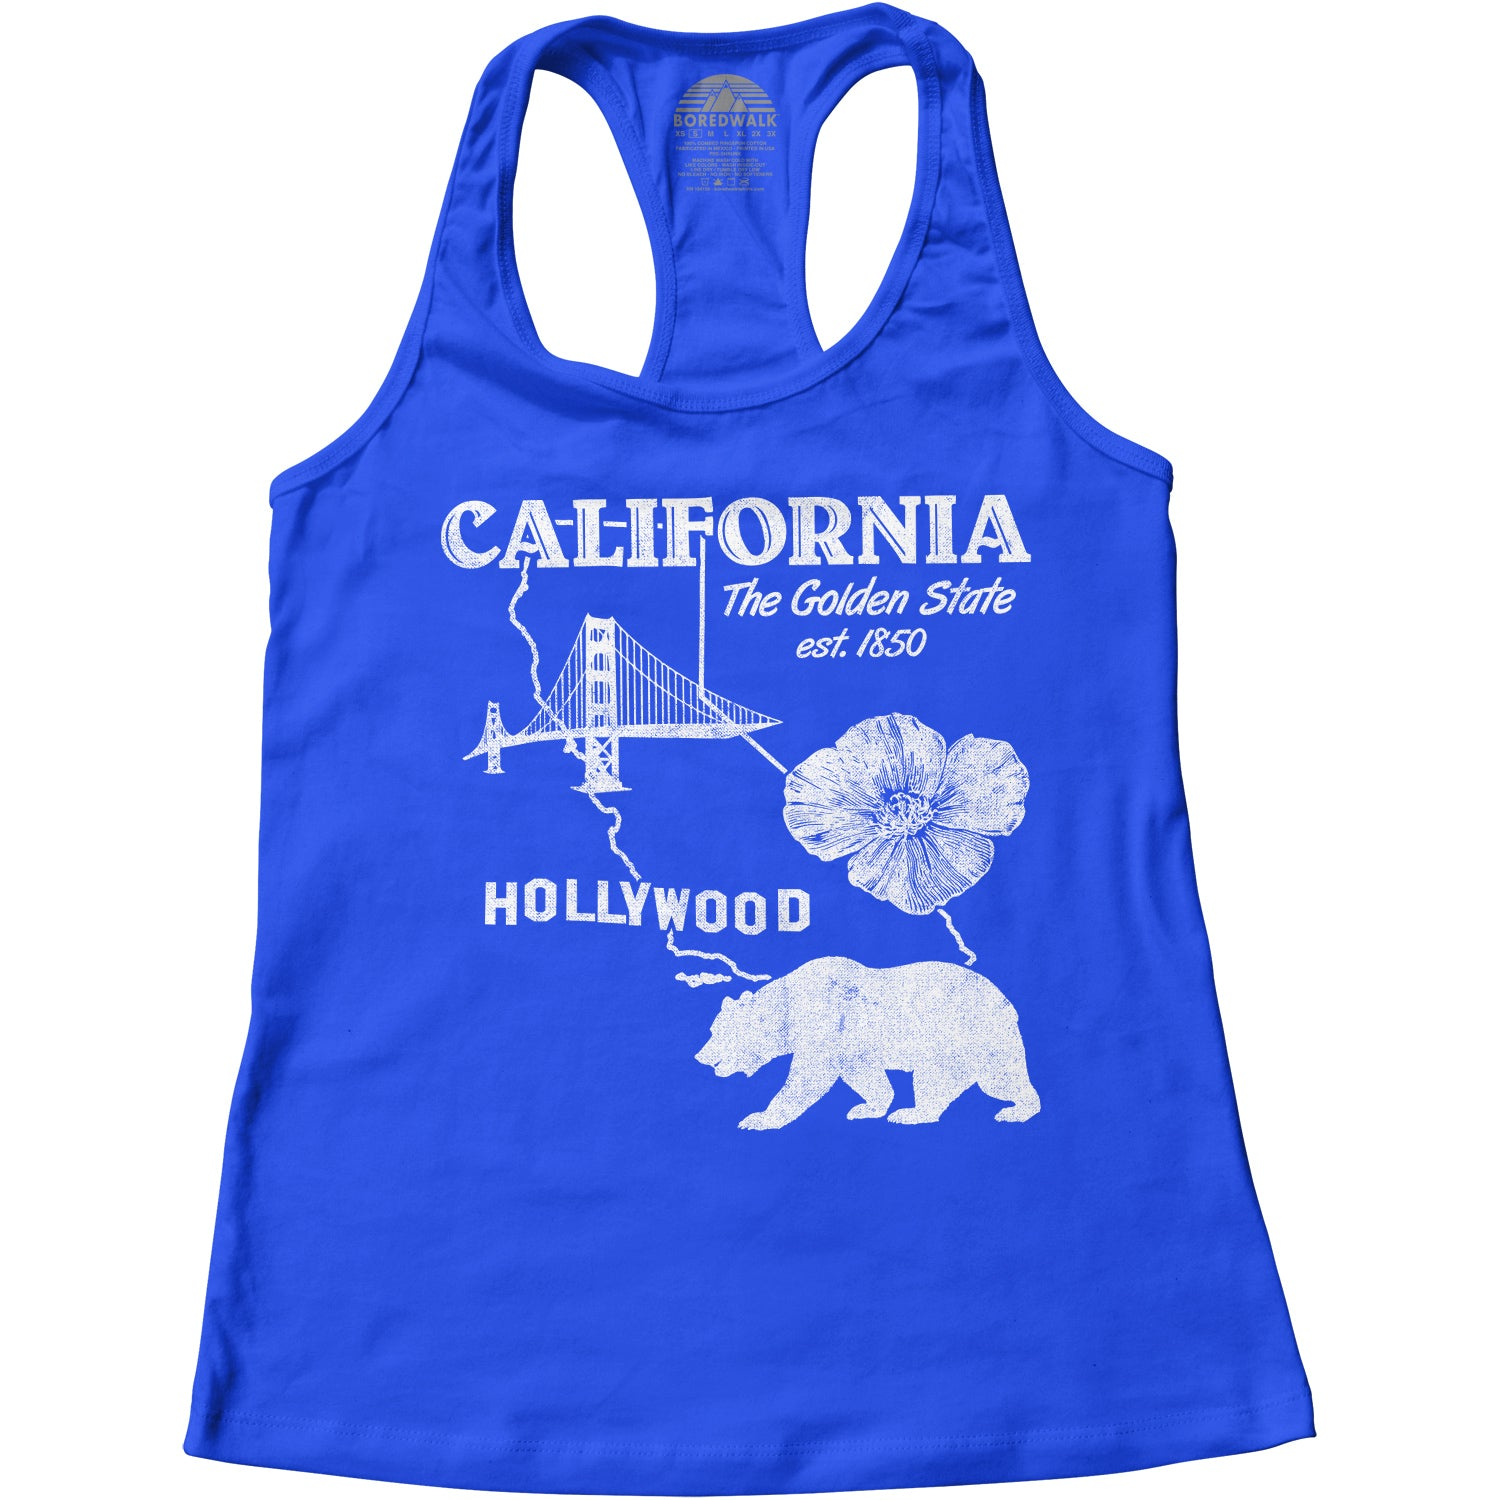 Women's California Racerback Tank Top